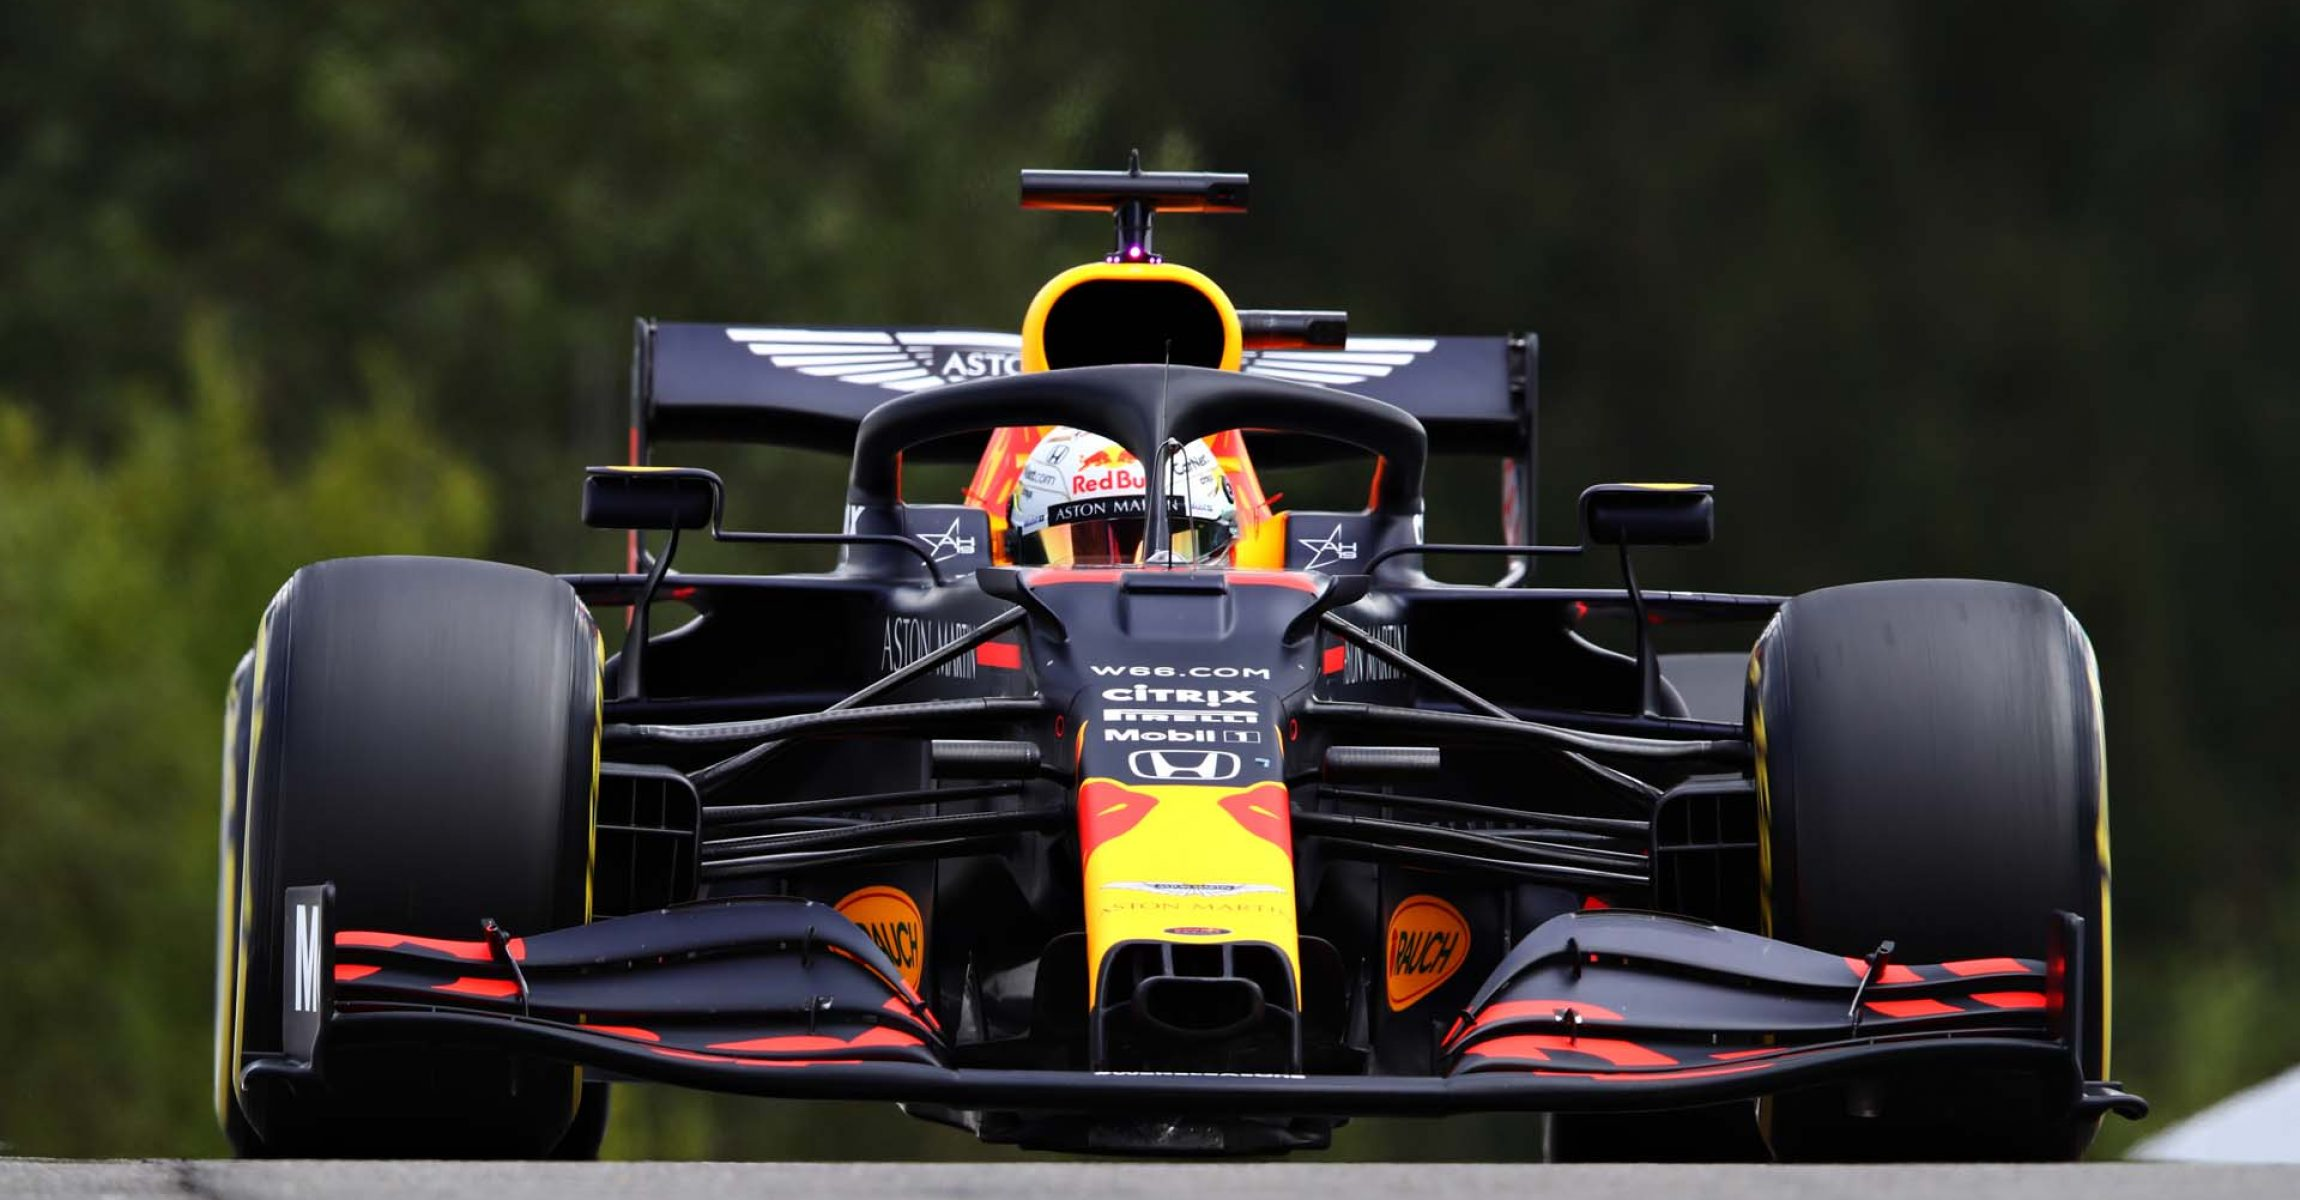 SPA, BELGIUM - AUGUST 29: Max Verstappen of the Netherlands driving the (33) Aston Martin Red Bull Racing RB16 drives on track during qualifying for the F1 Grand Prix of Belgium at Circuit de Spa-Francorchamps on August 29, 2020 in Spa, Belgium. (Photo by Mark Thompson/Getty Images)